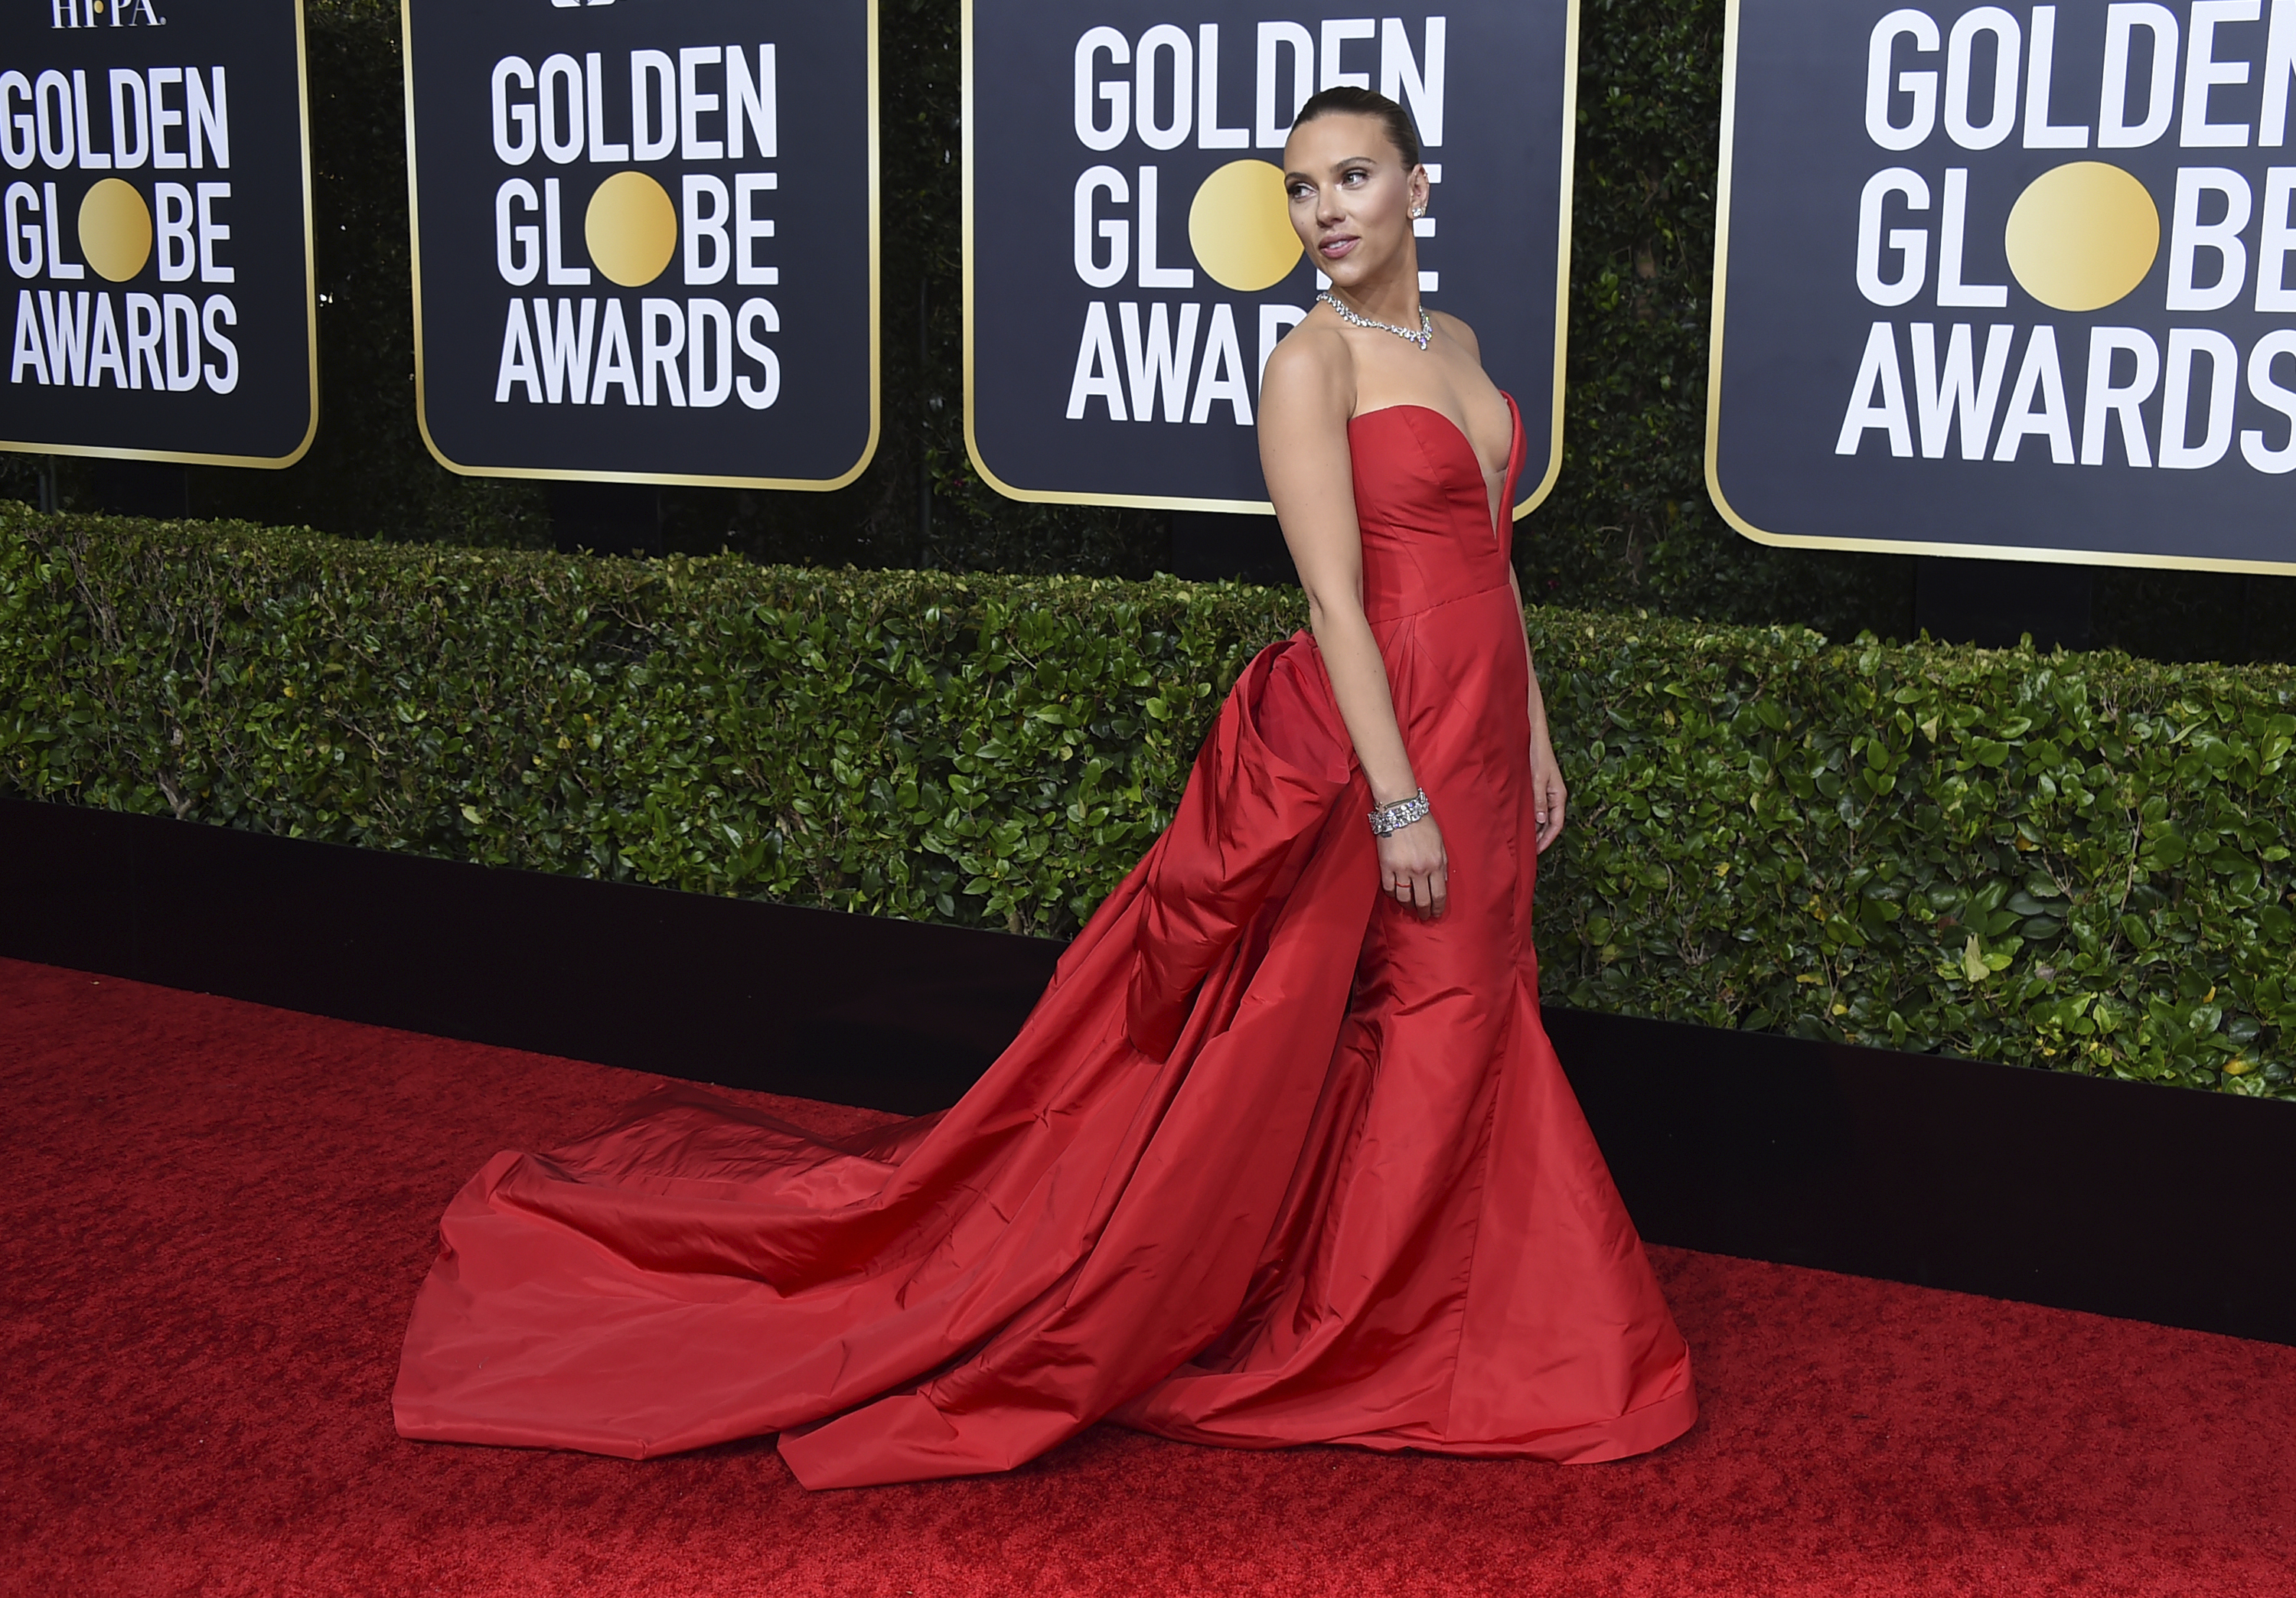 Golden Globes 5: Best fashion on the red carpet - CNN Style